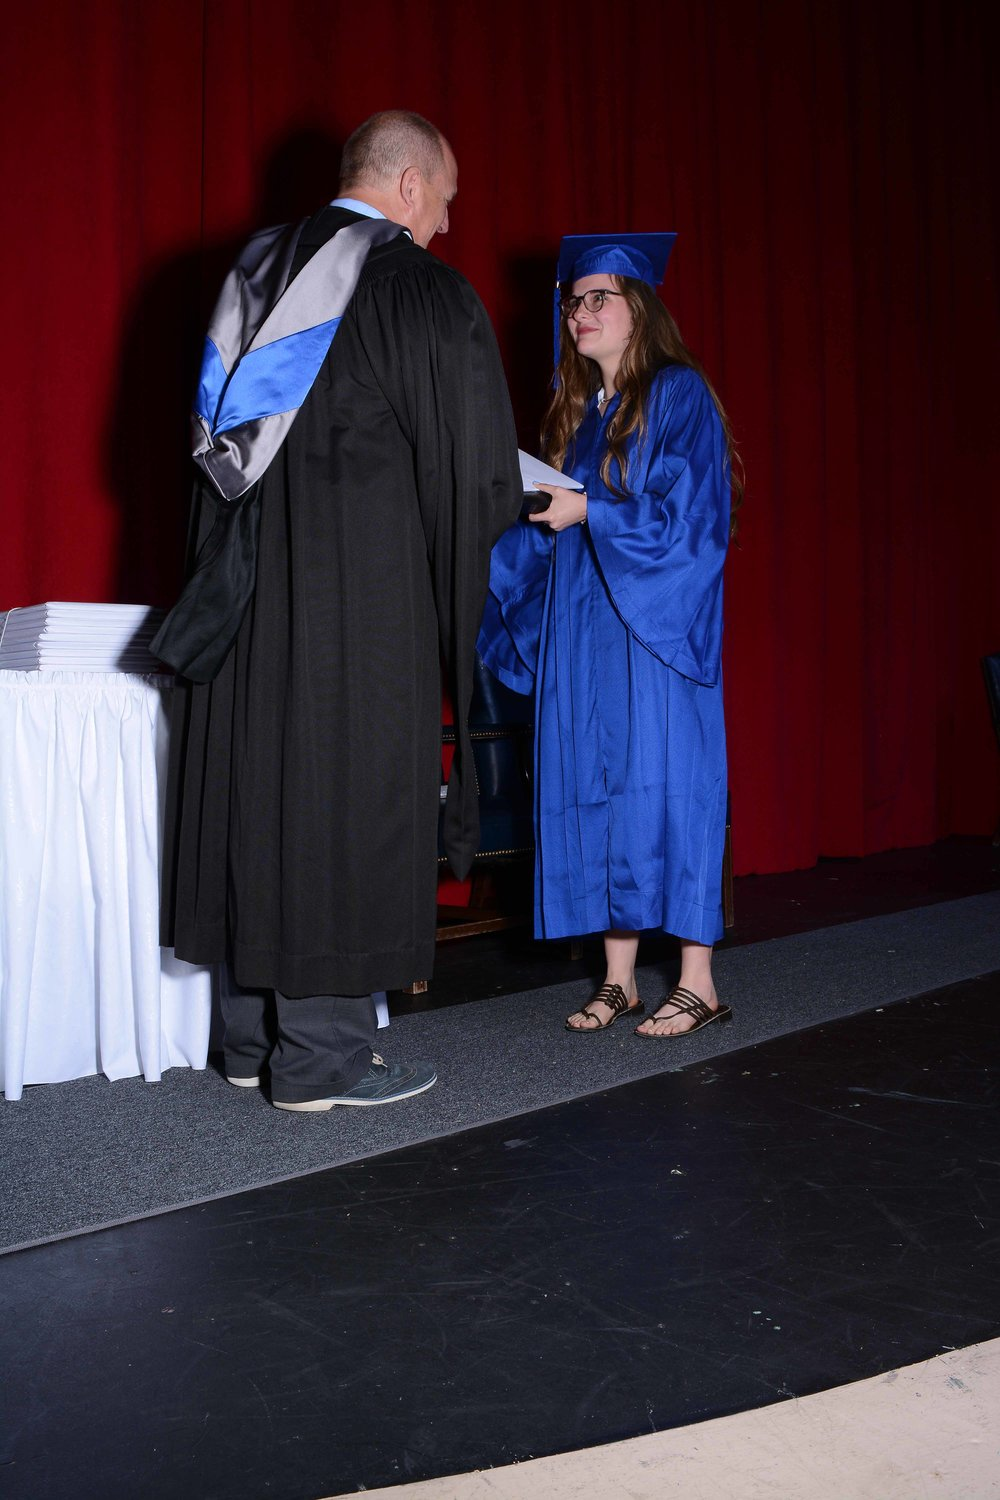 May14 Commencement26.jpg